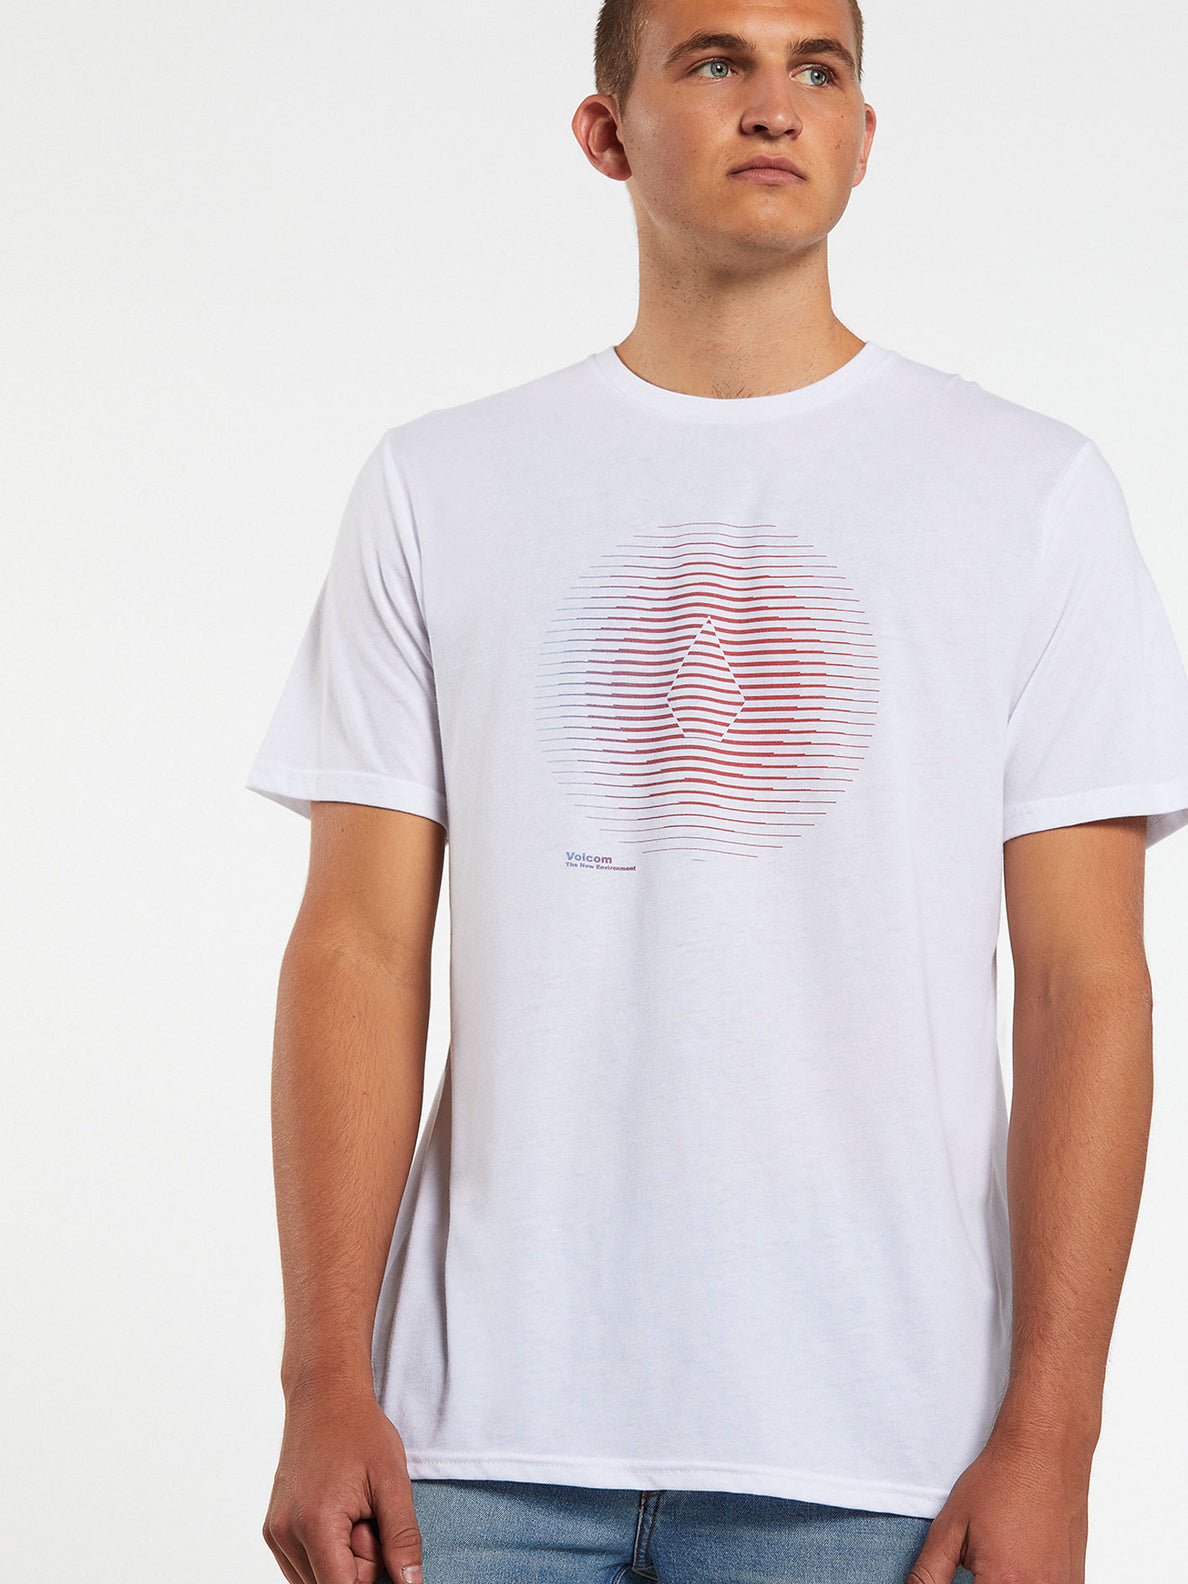 Trepid Short Sleeve Tee - White (A5732002_WHT) [2]